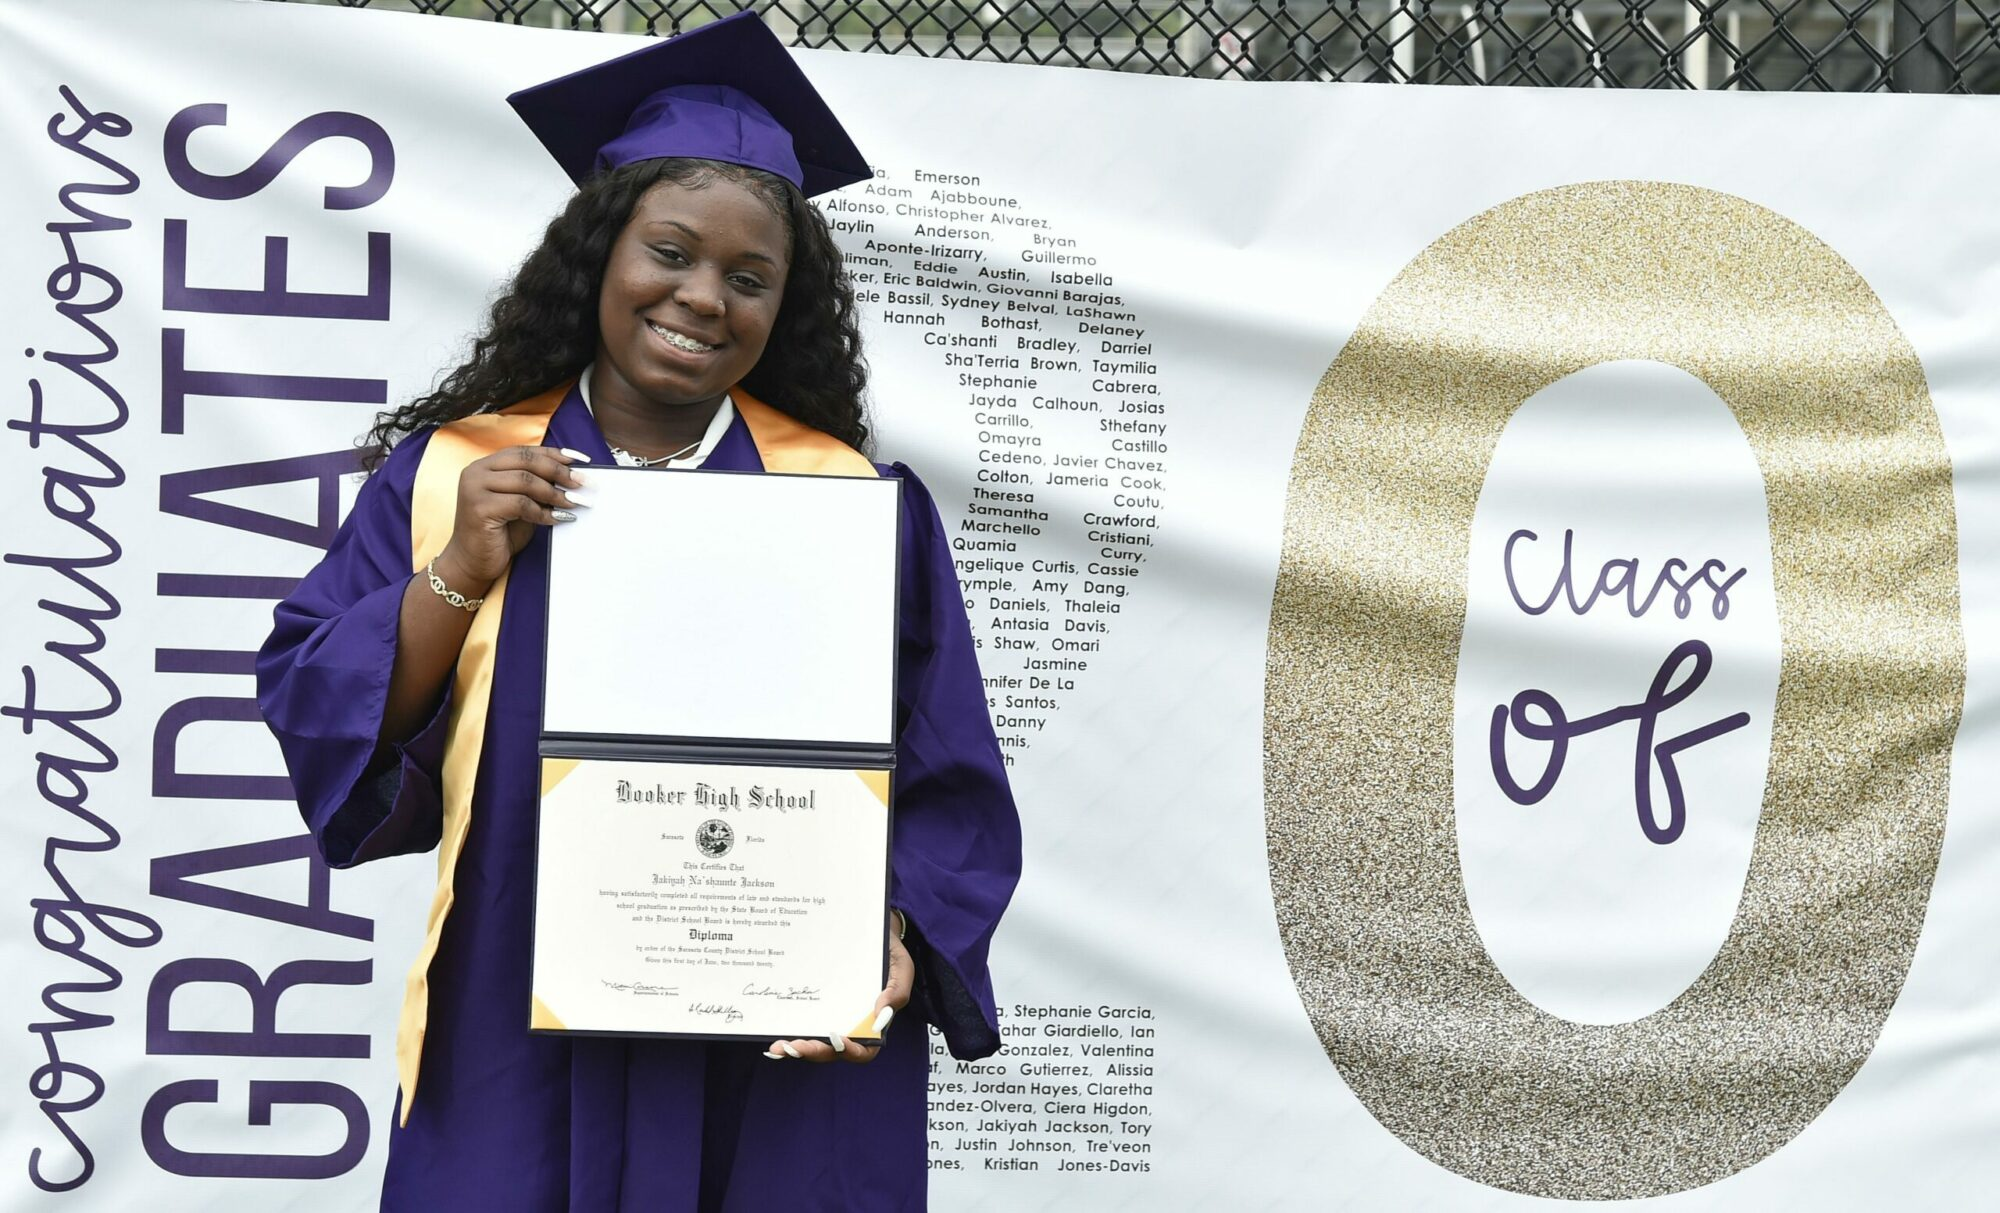 Booker Promise Looks to Community for Scholarship Support